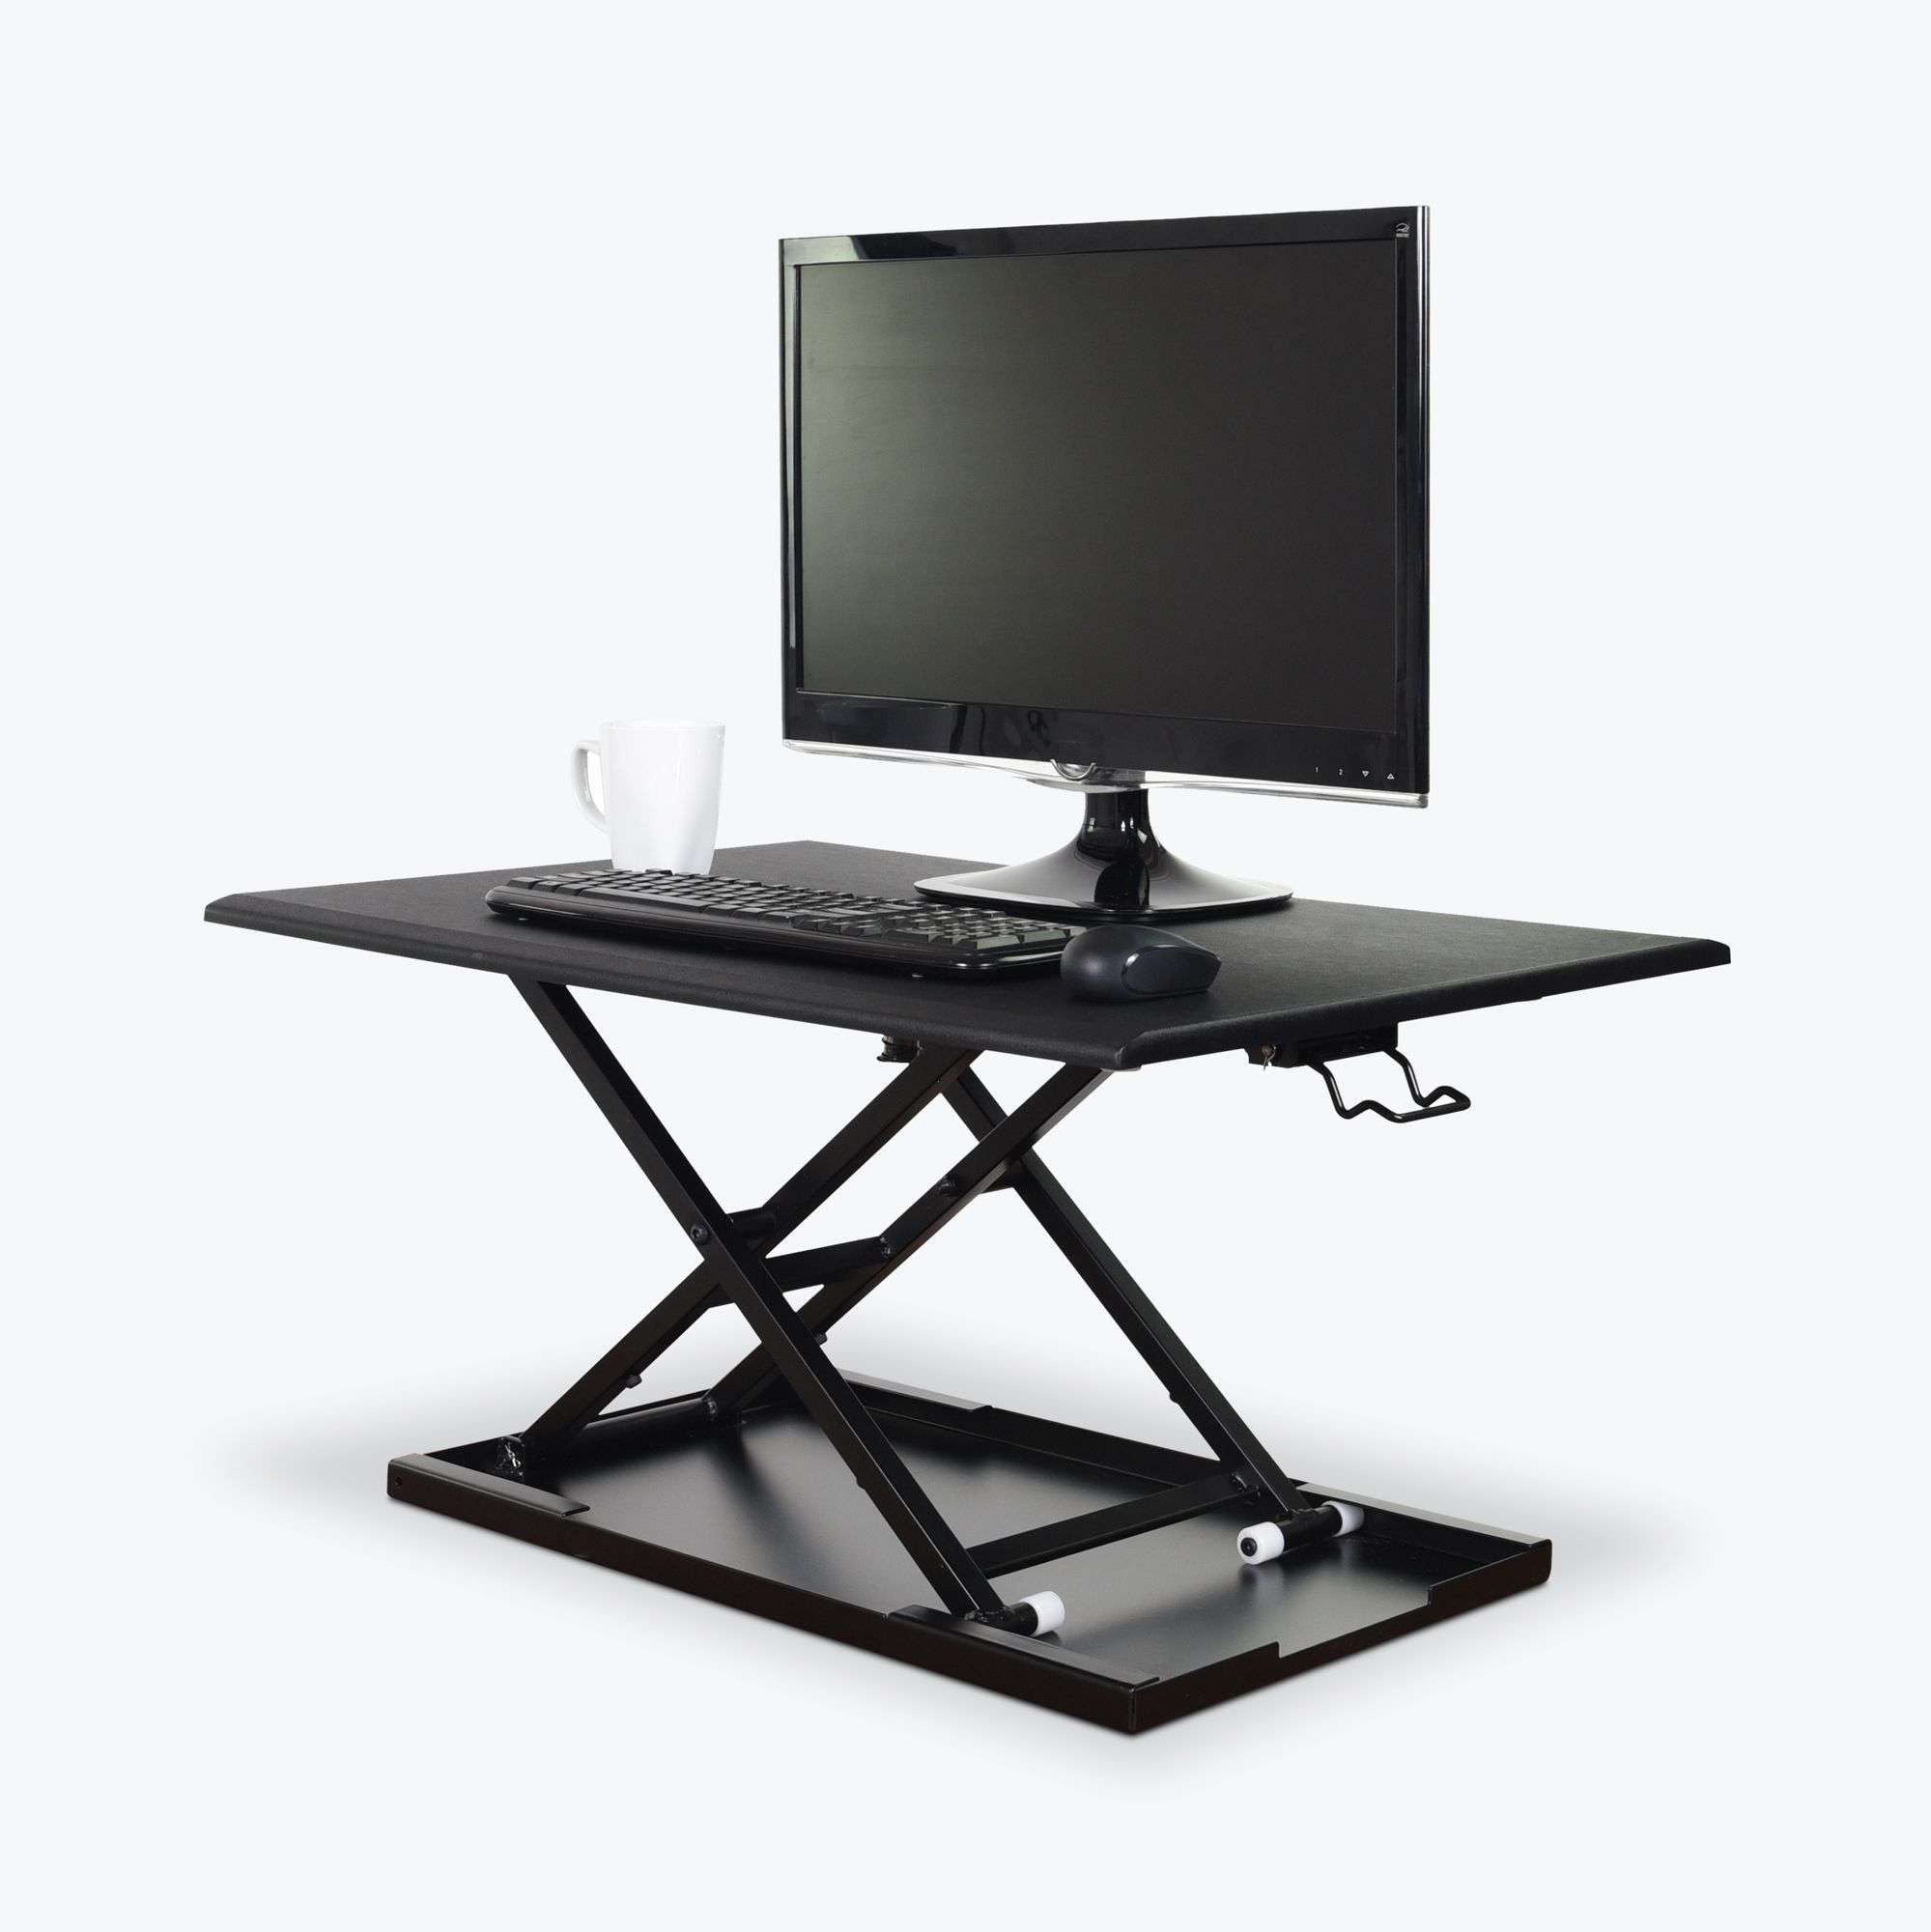 Level Up Pneumatic Adjustable Desktop Desk